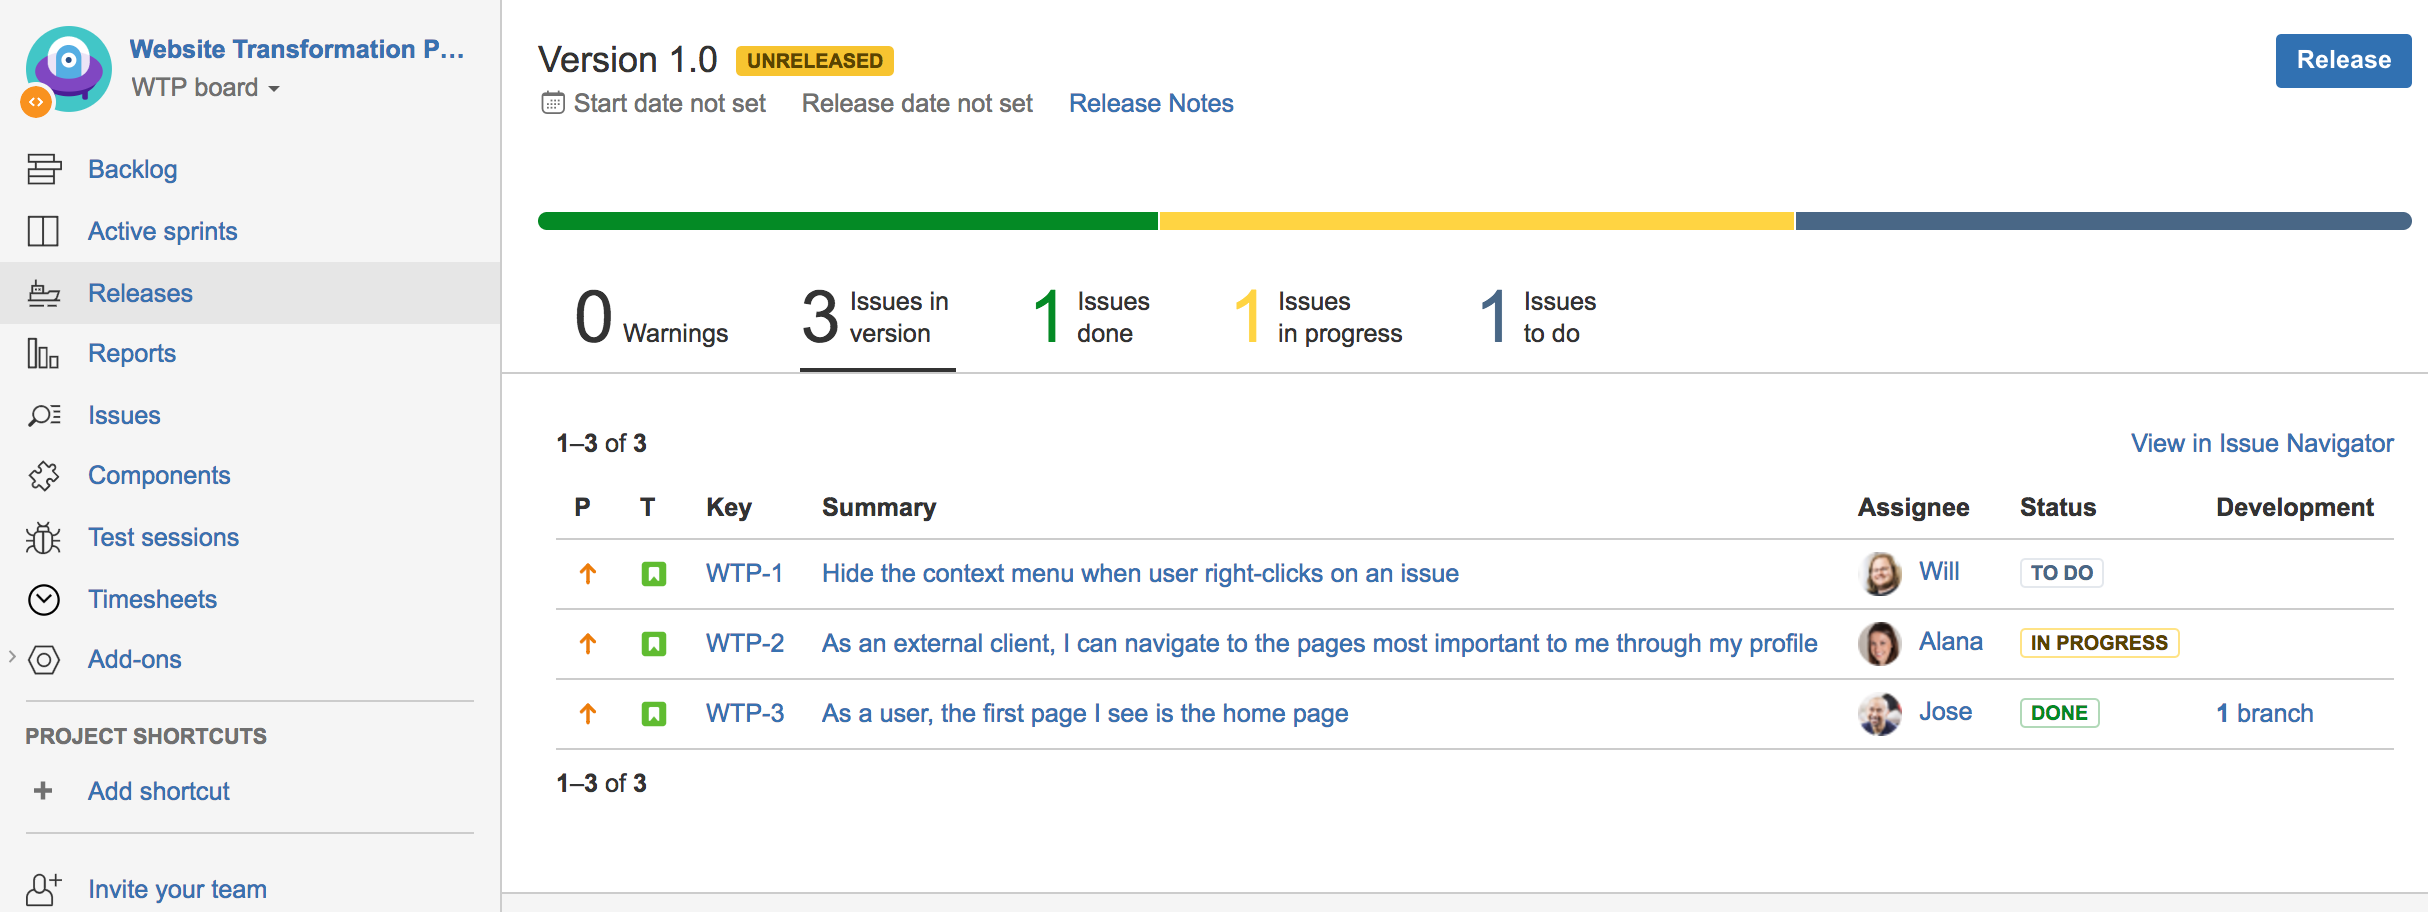 Screenshot of the Release Hub feature in Jira Software, showing the progress of deployments for release version 1.0